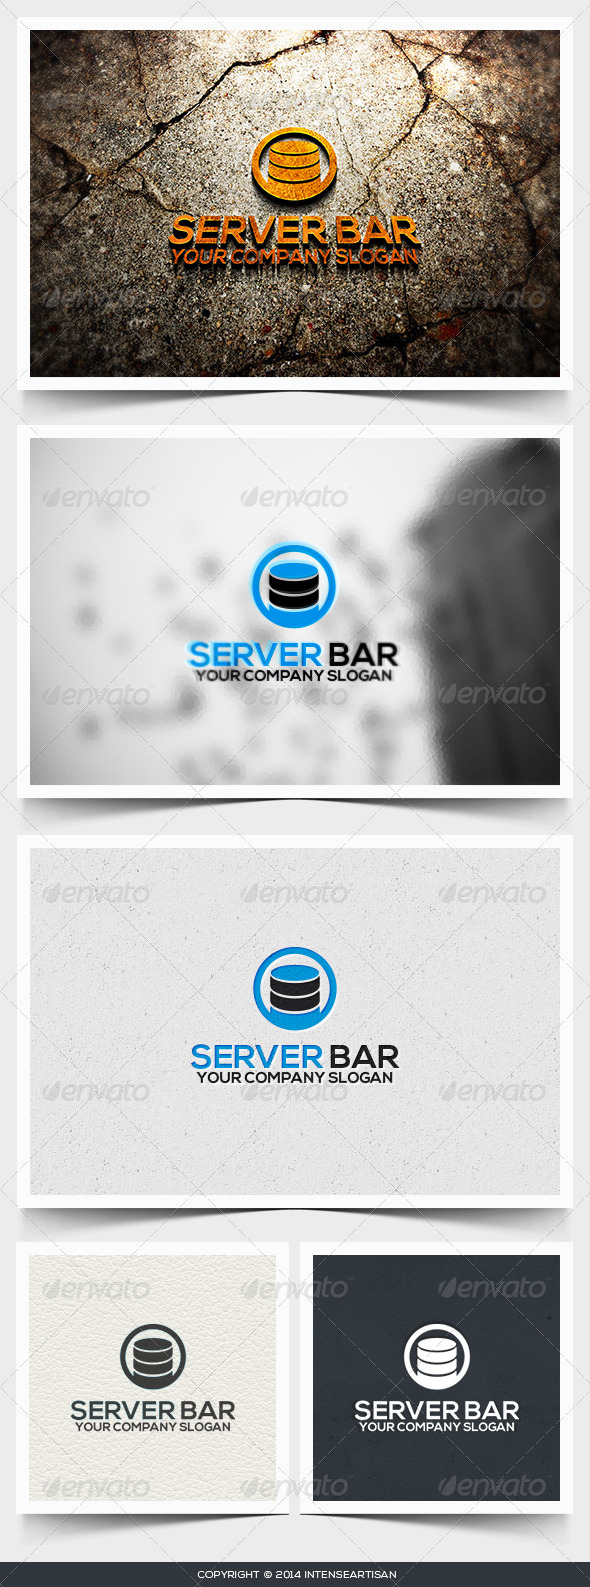 Server Bar Logo Template - Objects Logo Templates